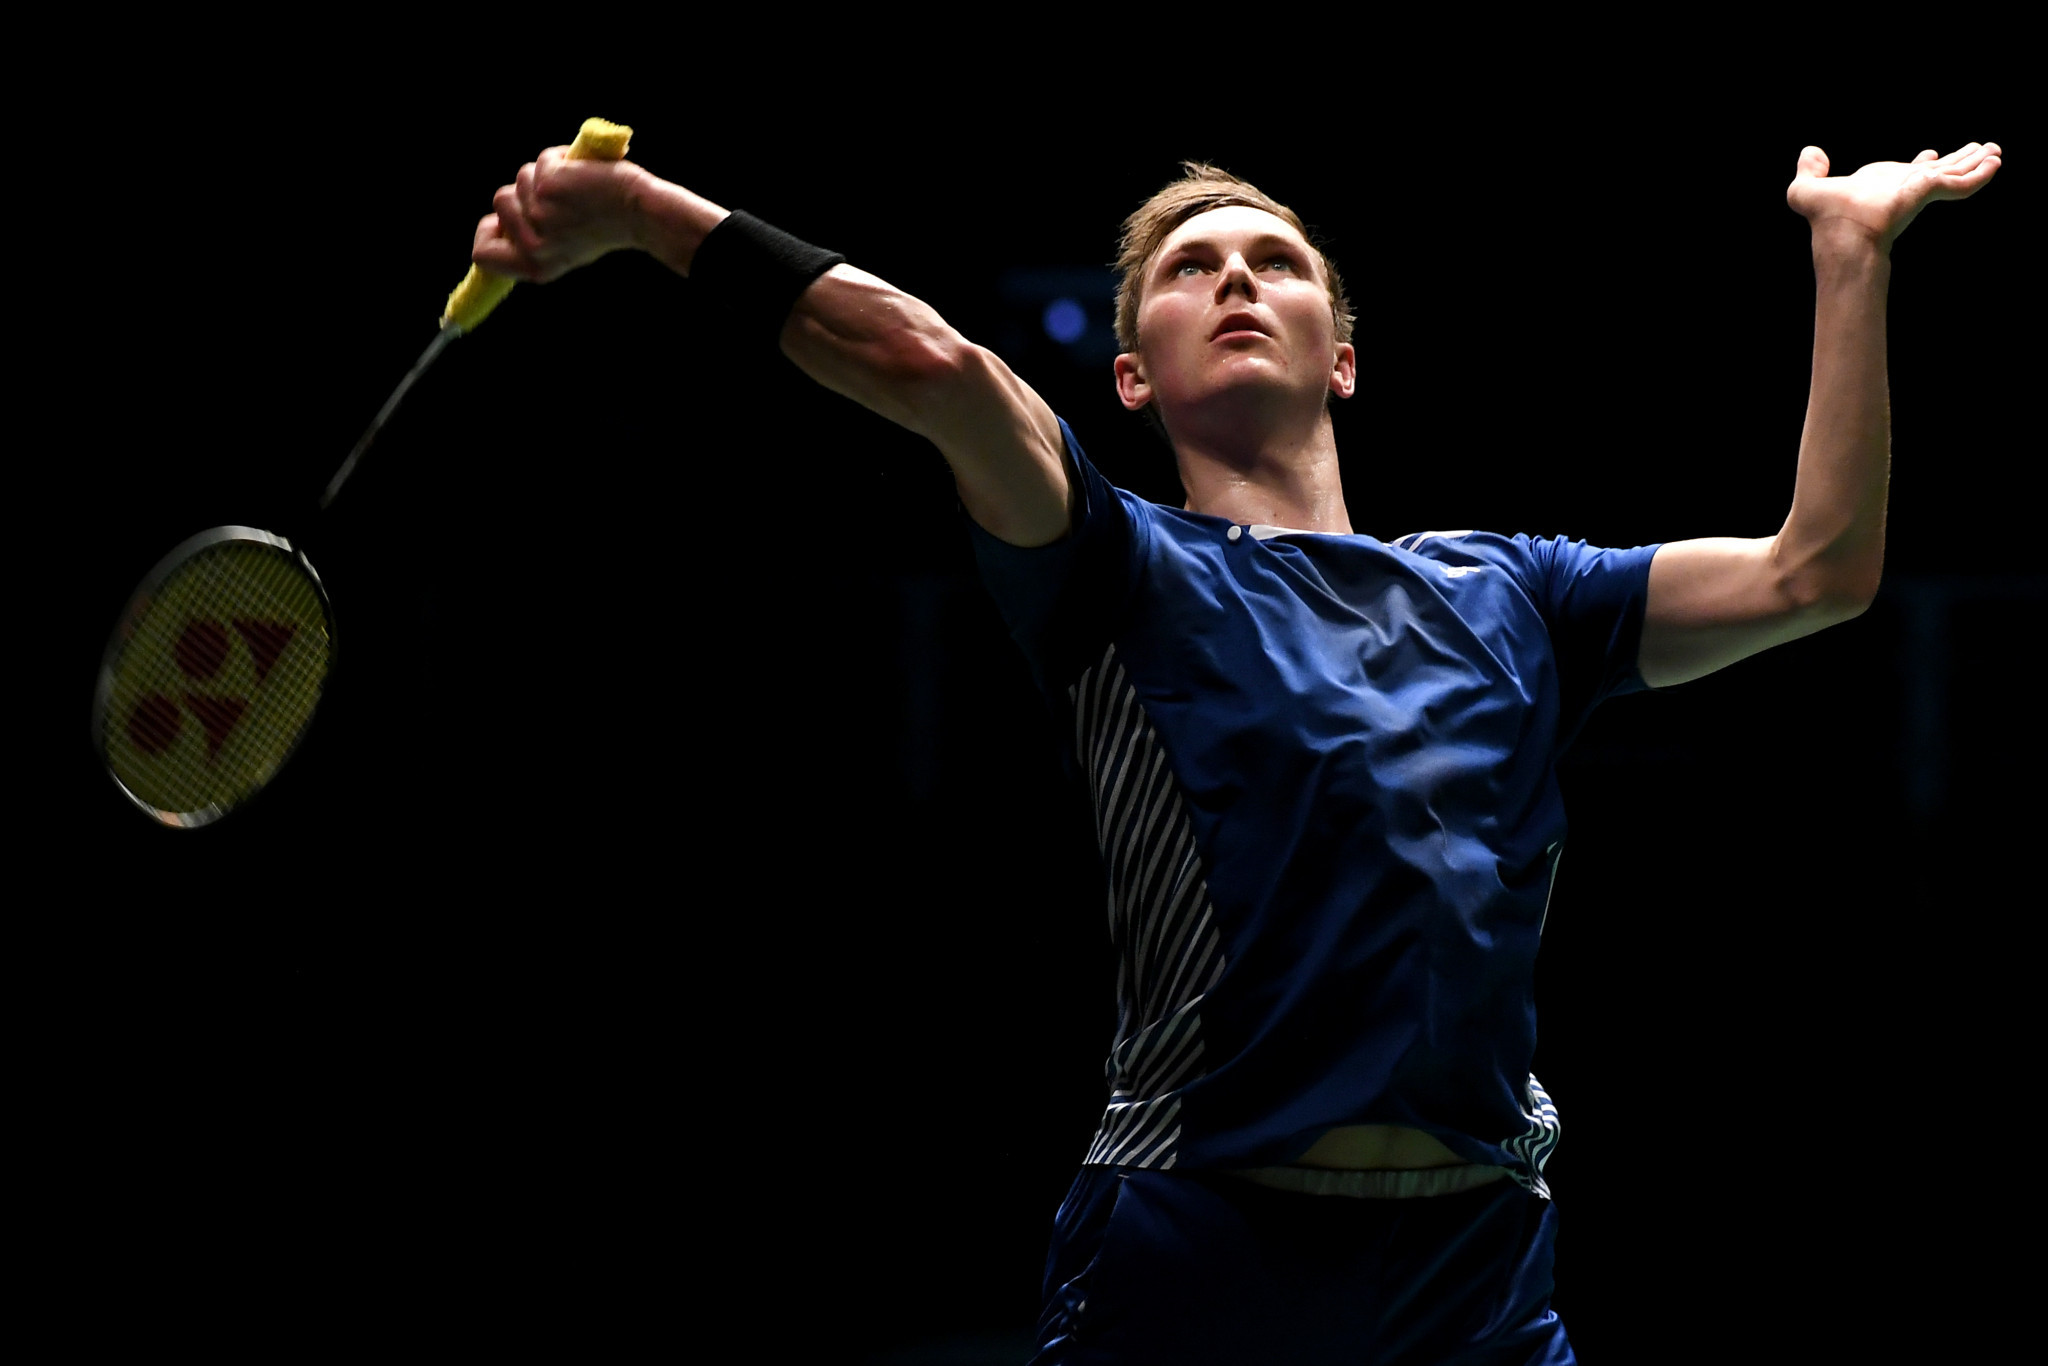 Viktor Axelsen helped Denmark beat The Netherlands today at the European Badminton Mixed Team Championships ©Getty Images